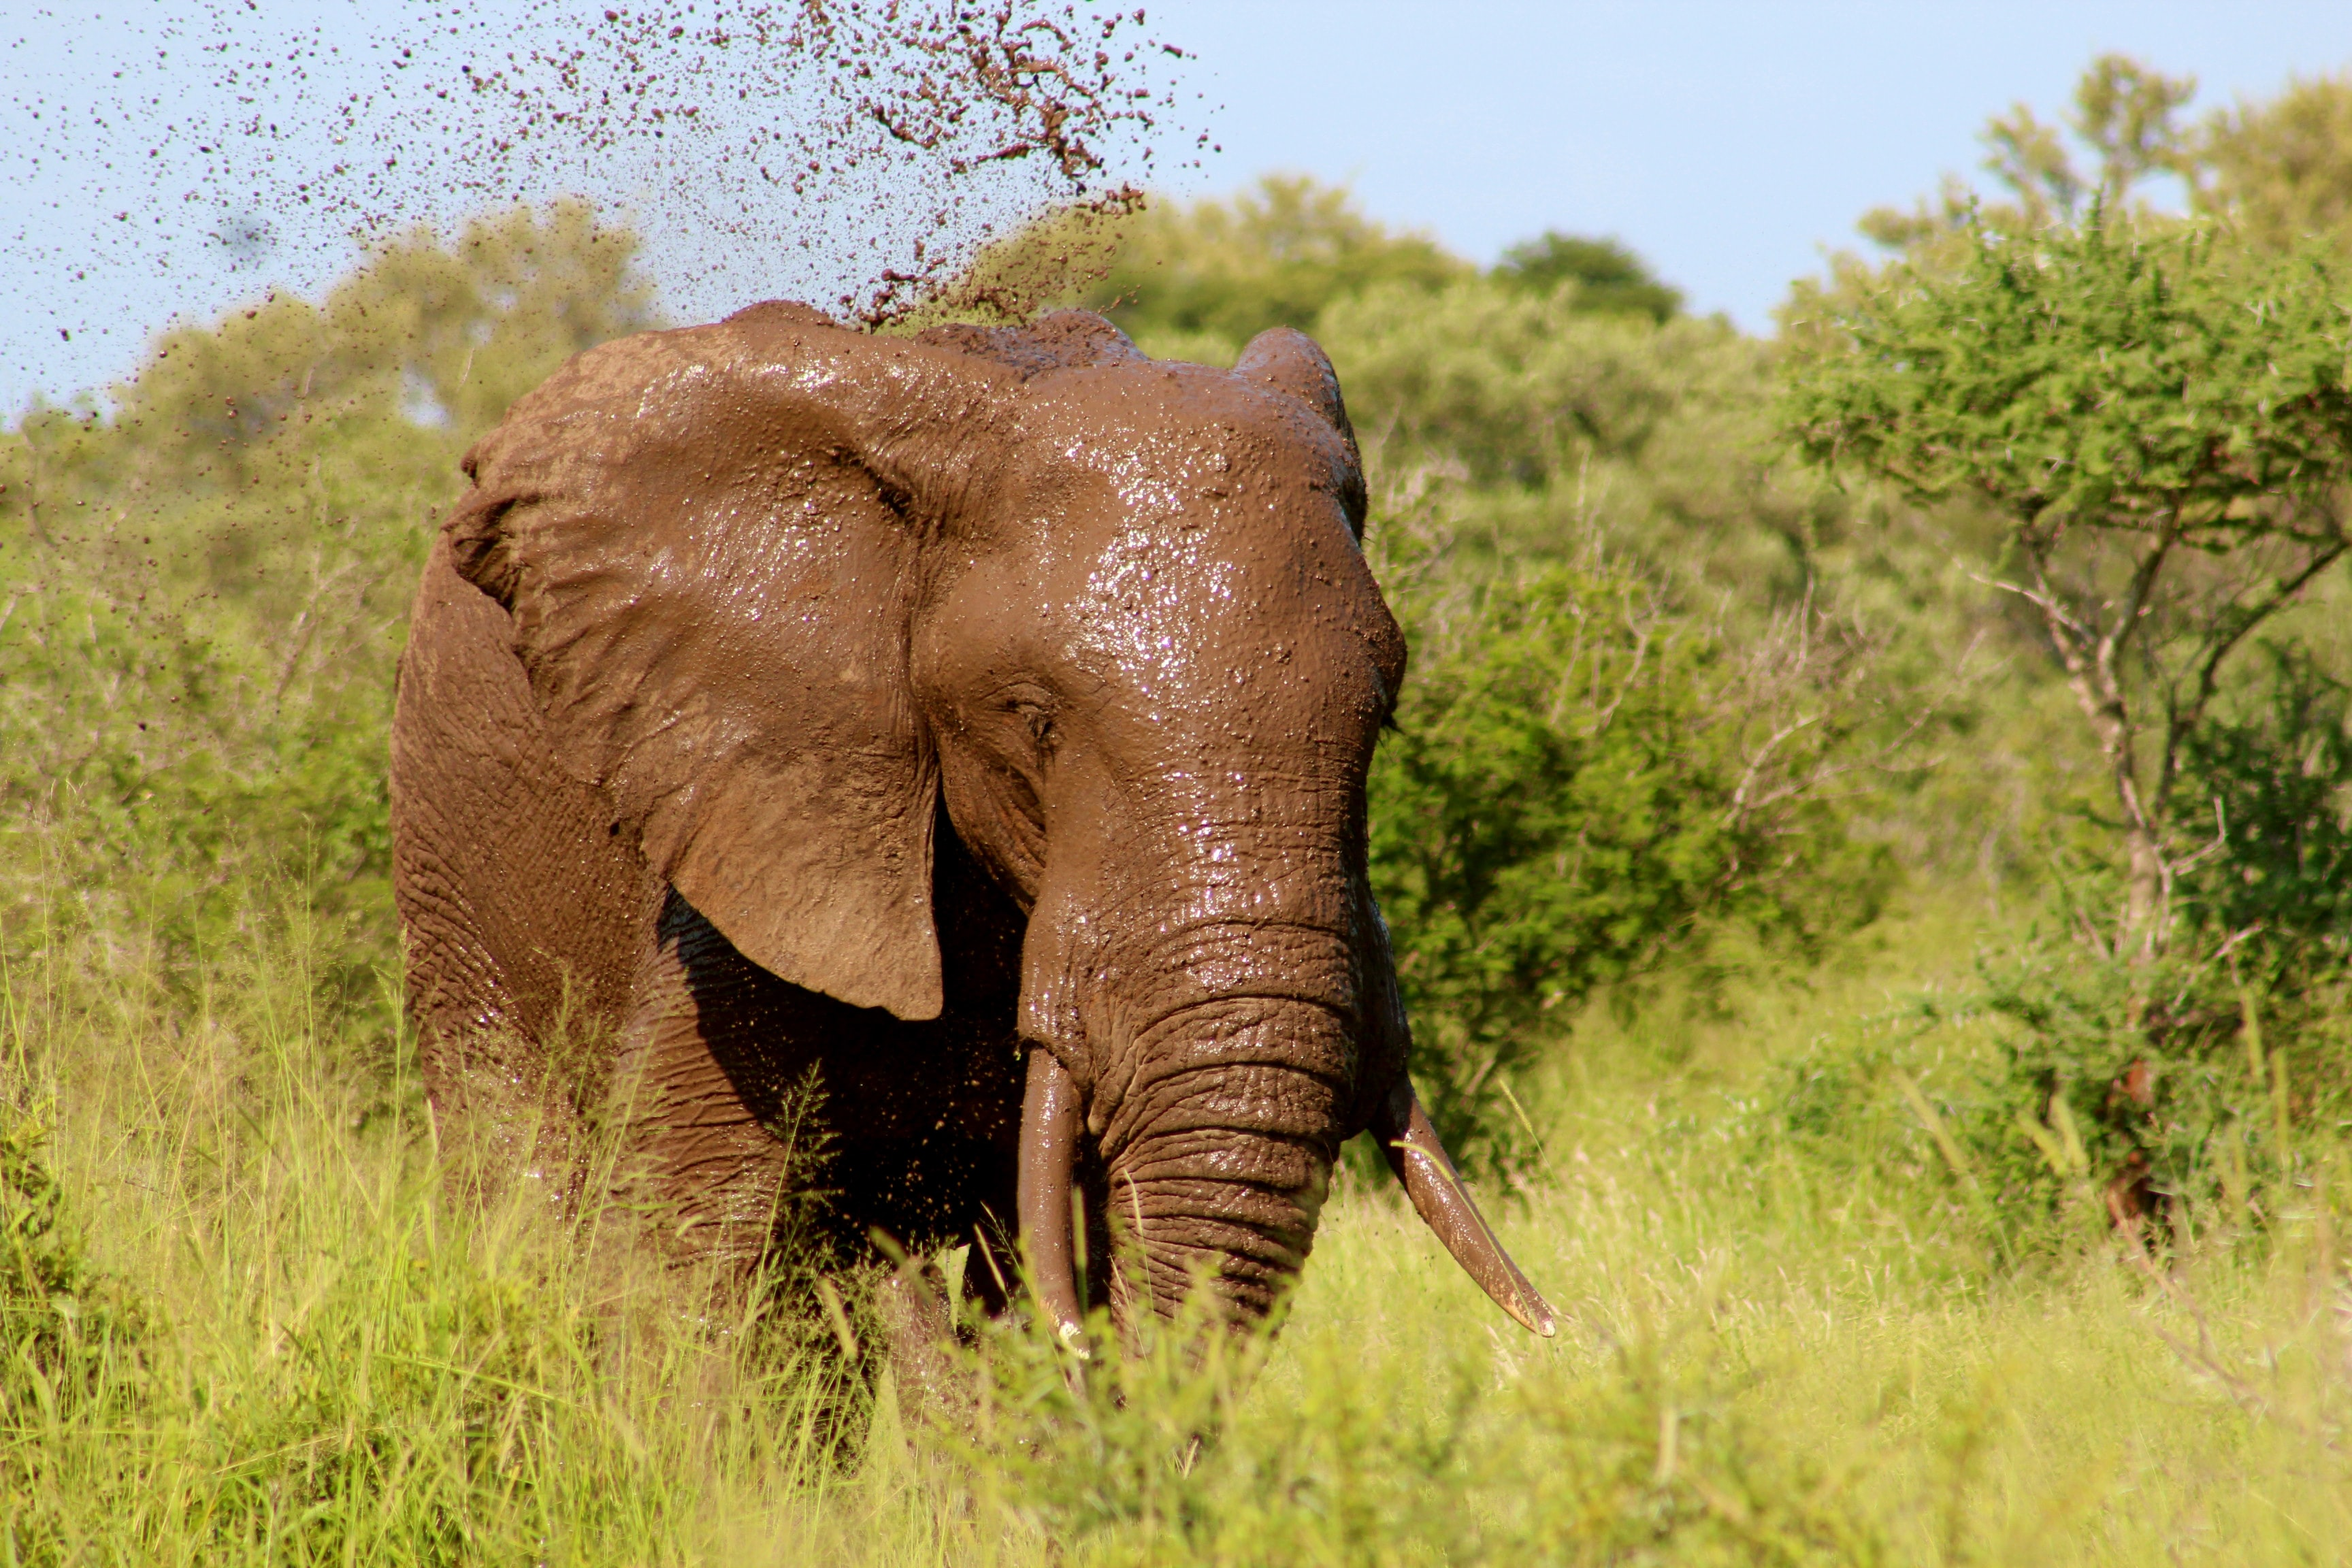 brown elephant walking on grass field